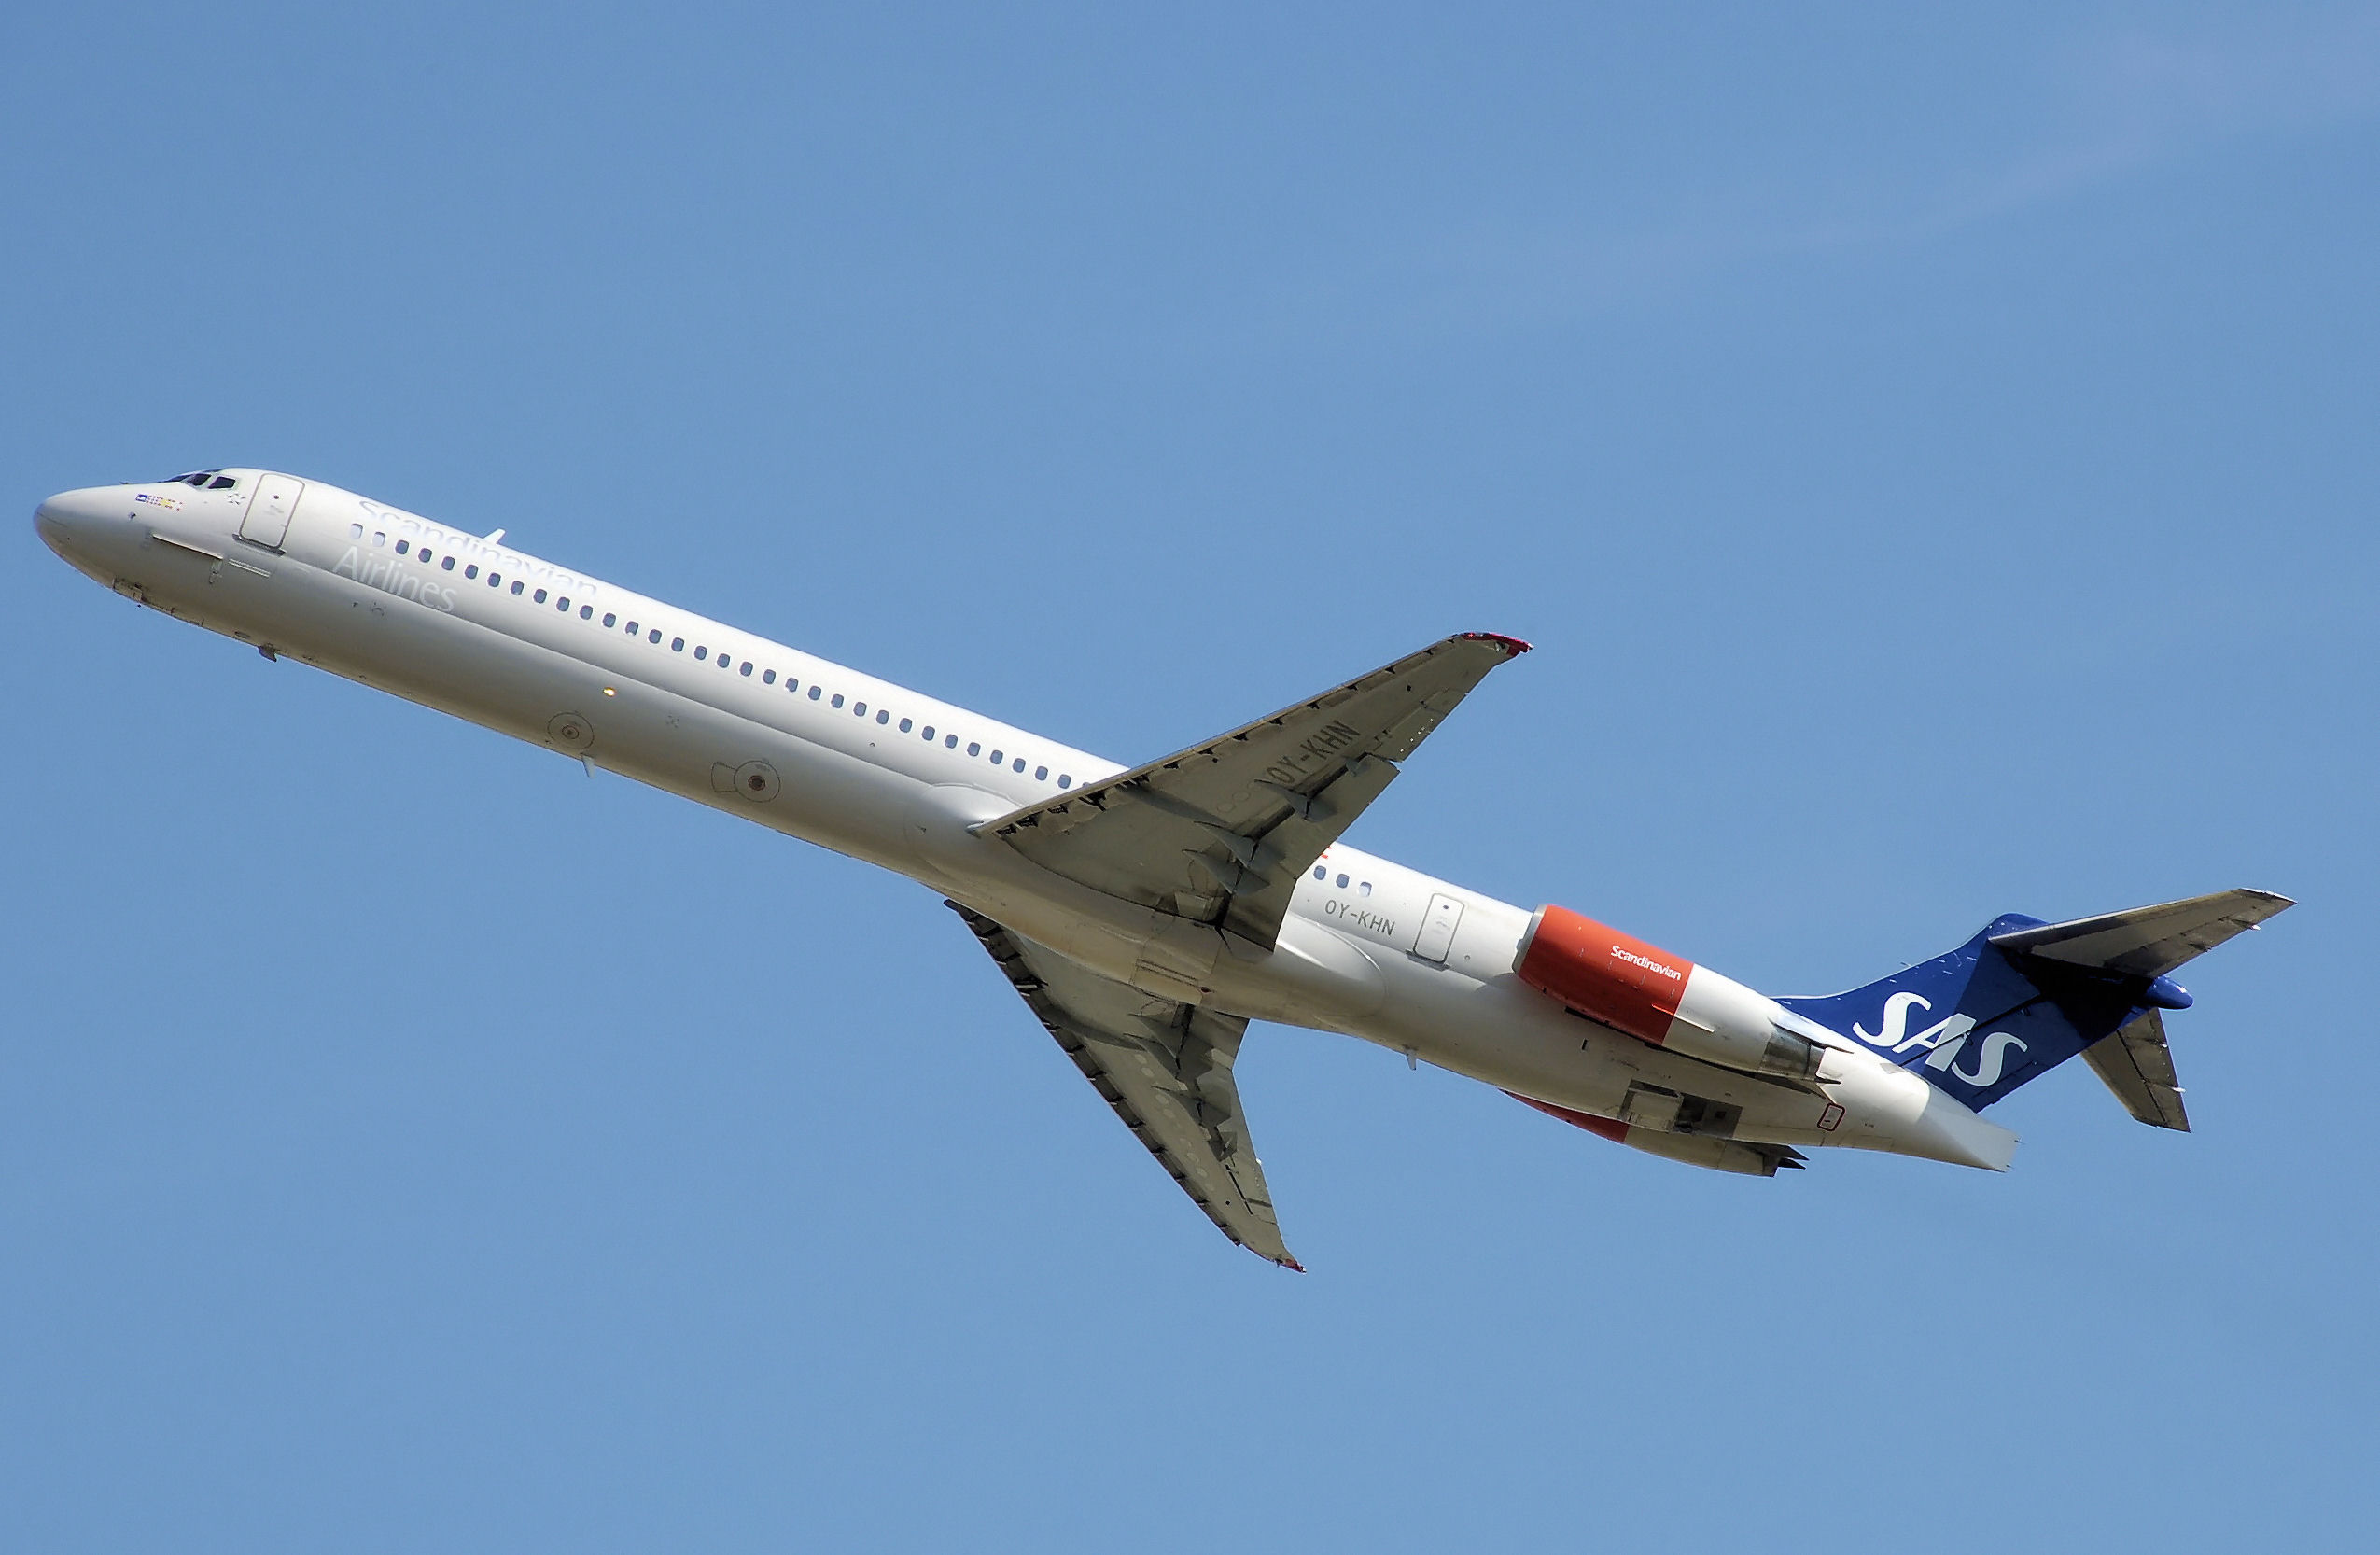 Scandinavian Airlines MD 81 taking off